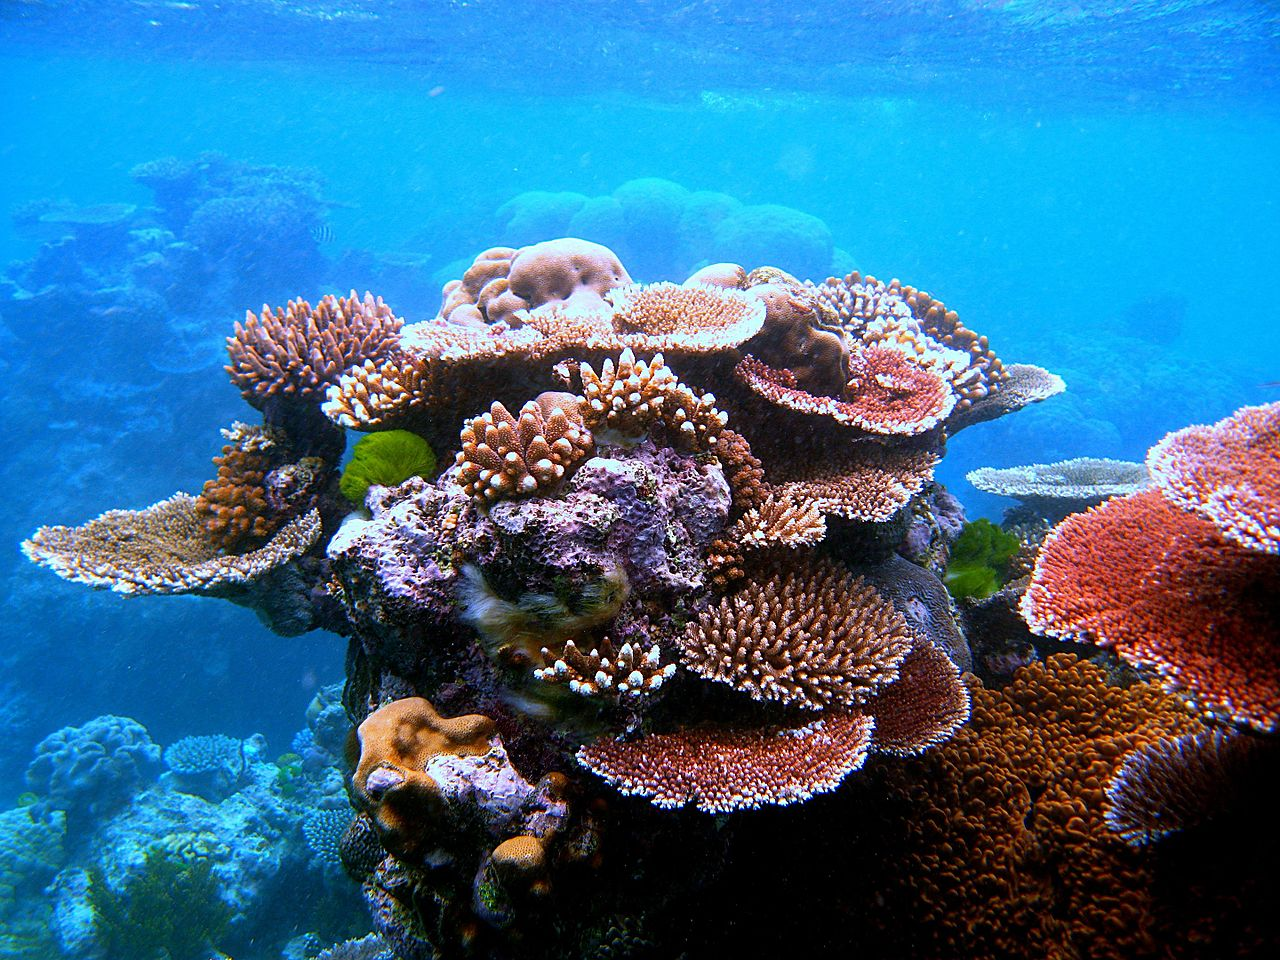 A variety of corals form an outcrop